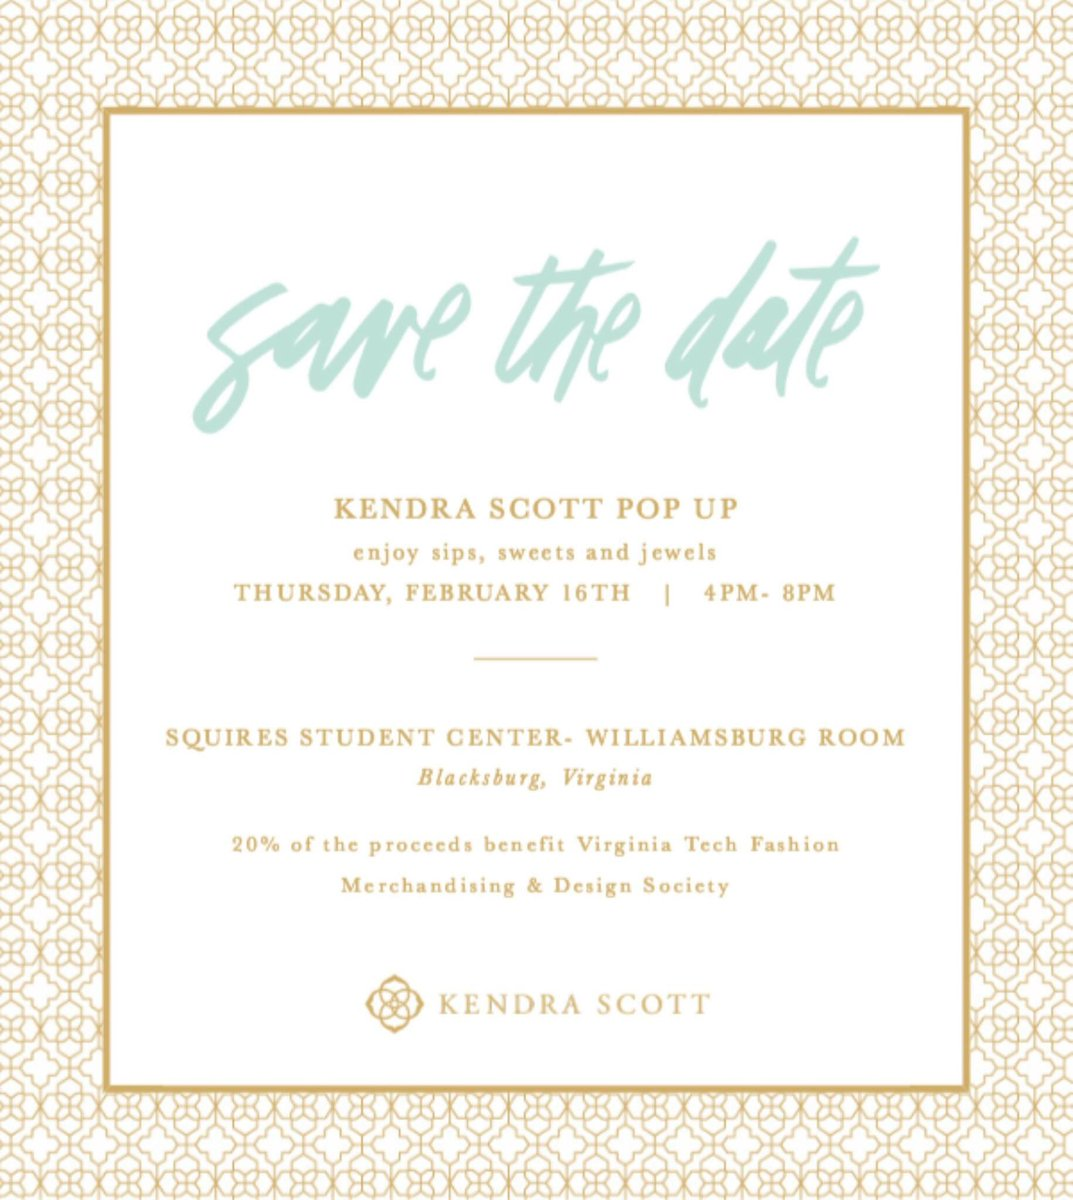 Vt Fmds On Twitter Save The Date For Our Kendra Scott Social Bring Along Friends So You Can All Enjoy Sips Sweets Jewels Can T Wait To See You All There Https T Co Buwwtyghpe